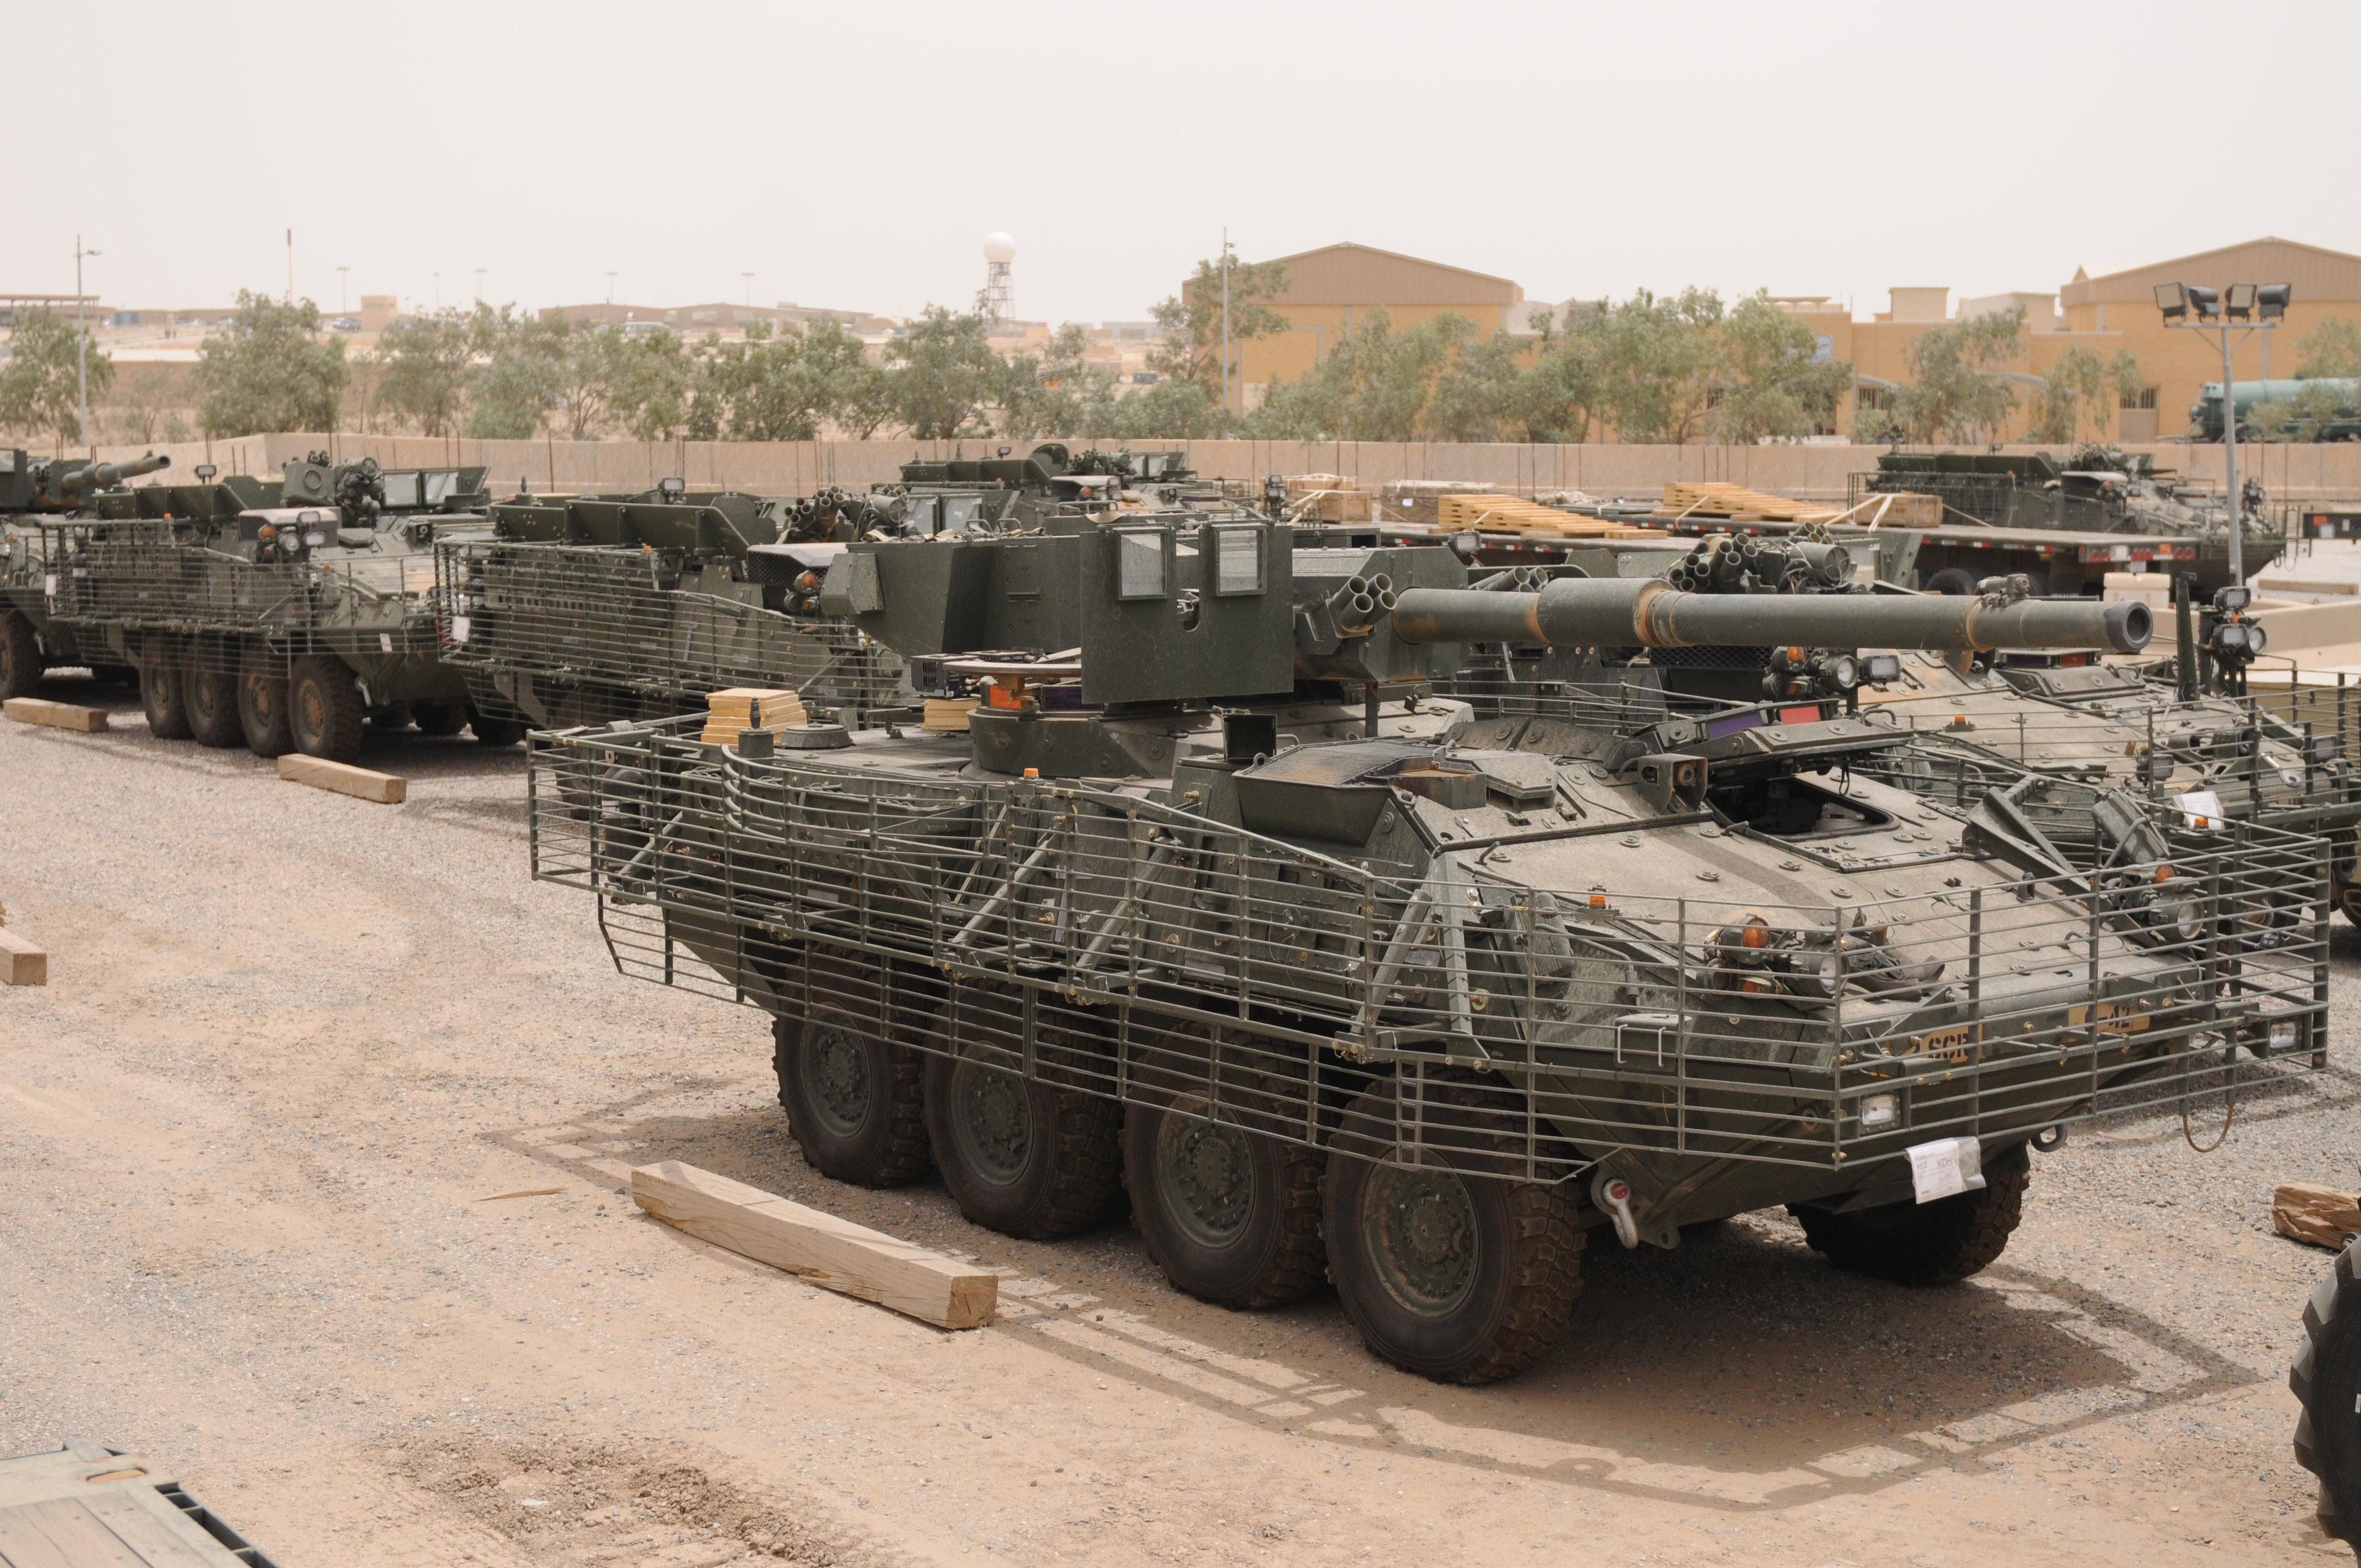 https://upload.wikimedia.org/wikipedia/commons/8/8e/Flickr_-_DVIDSHUB_-_Third_Army_Moving_Strykers_to_Afghanistan.jpg